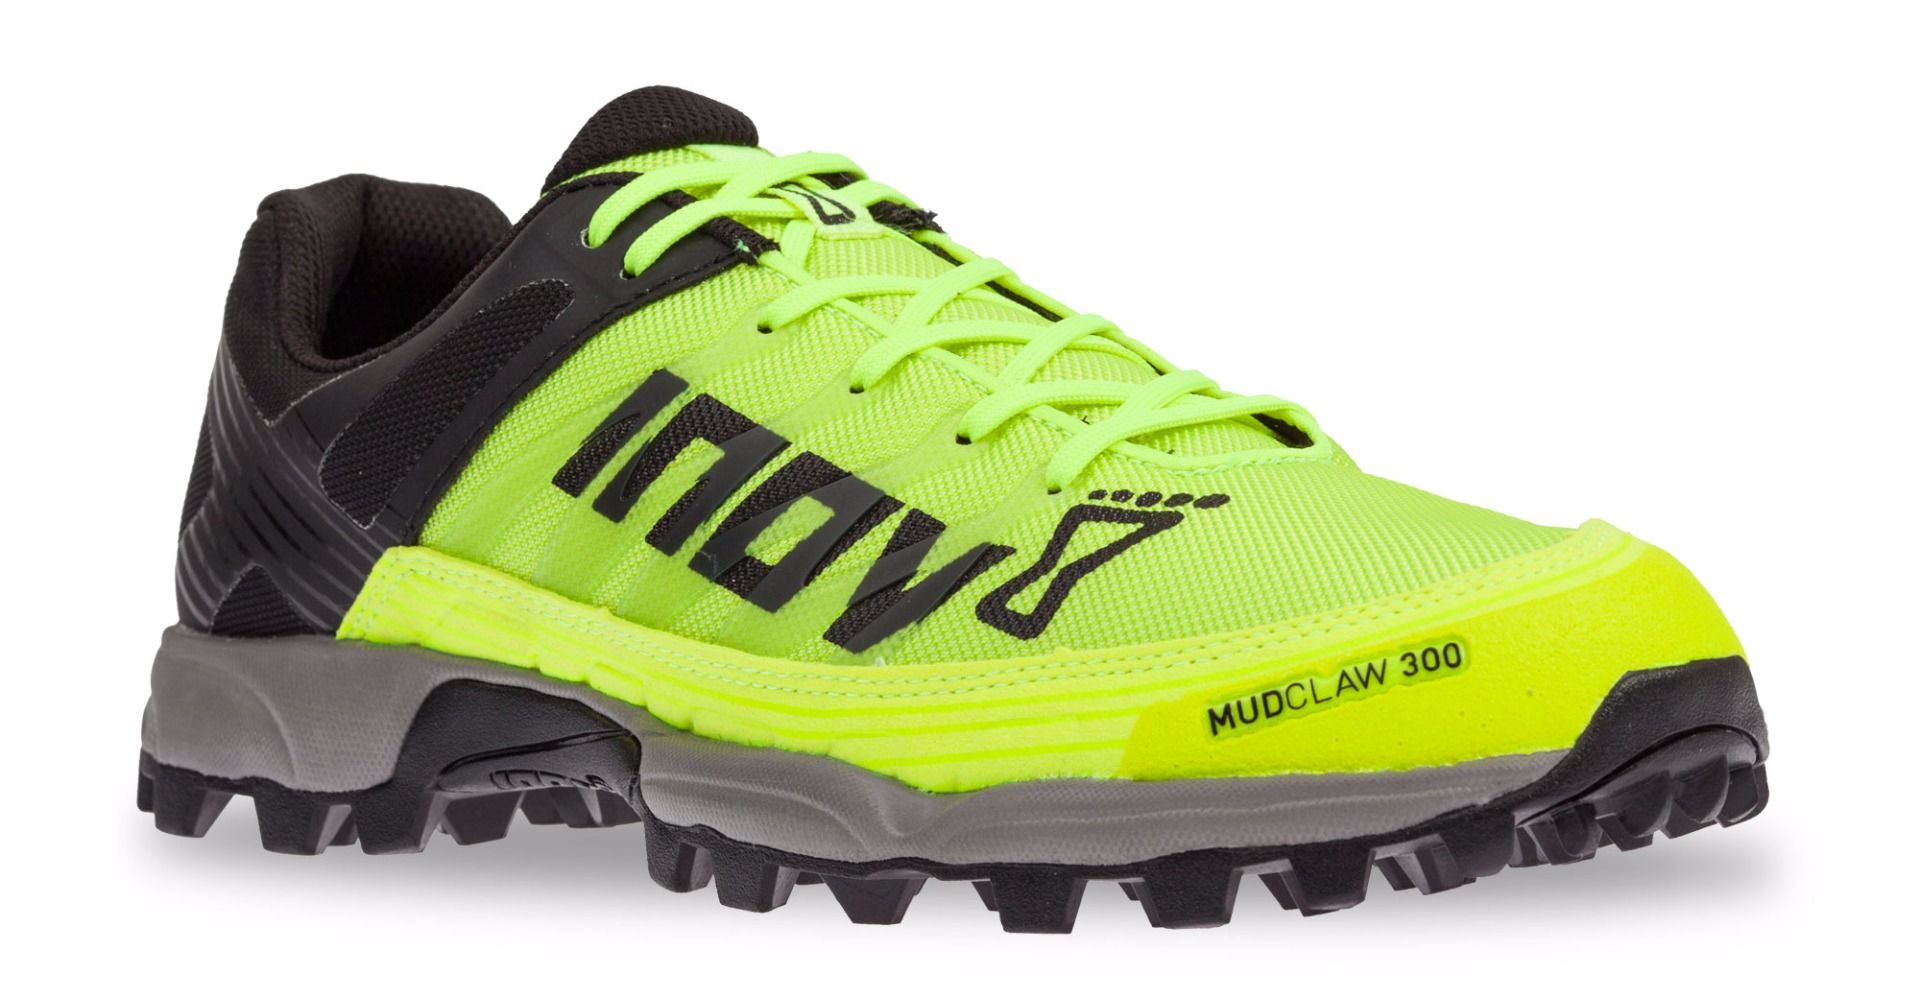 Unisex Inov8 Mudclaw 300 - men's trail running shoes - Sports 4